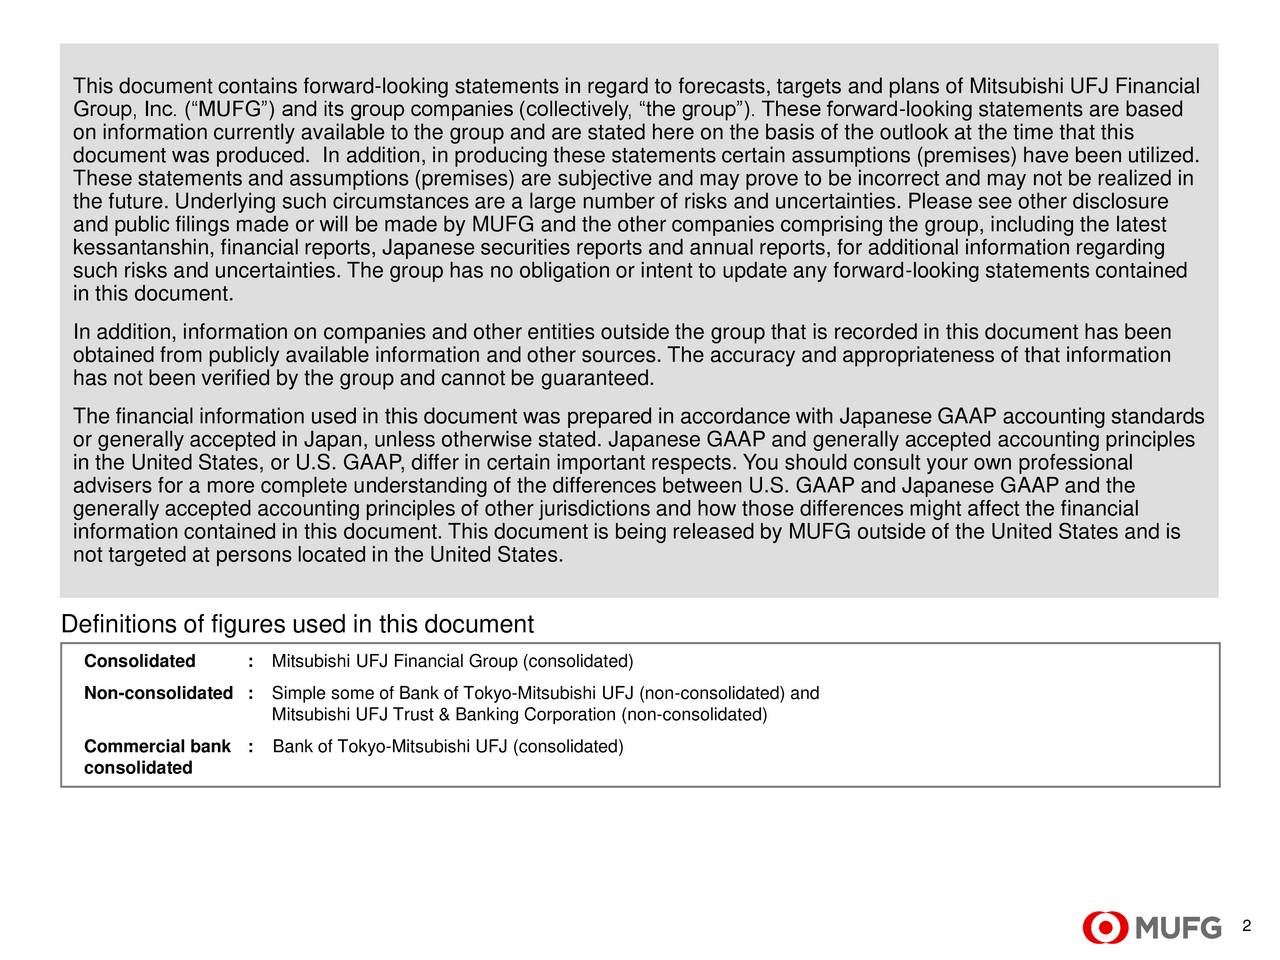 Group, Inc. (MUFG) and its group companies (collectively, the group). These forward-looking statements are based on information currently available to the group and are stated here on the basis of the outlook at the time that this document was produced. In addition, in producing these statements certain assumptions (premises) have been utilized. These statements and assumptions (premises) are subjective and may prove to be incorrect and may not be realized in the future. Underlying such circumstances are a large number of risks and uncertainties. Please see other disclosure and public filings made or will be made by MUFG and the other companies comprising the group, including the latest kessantanshin, financial reports, Japanese securities reports and annual reports, for additional information regarding such risks and uncertainties. The group has no obligation or intent to update any forward-looking statements contained in this document. In addition, information on companies and other entities outside the group that is recorded in this document has been obtained from publicly available information and other sources. The accuracy and appropriateness of that information has not been verified by the group and cannot be guaranteed. The financial information used in this document was prepared in accordance with Japanese GAAP accounting standards or generally accepted in Japan, unless otherwise stated. Japanese GAAP and generally accepted accounting principles in the United States, or U.S. GAAP, differ in certain important respects. You should consult your own professional advisers for a more complete understanding of the differences between U.S. GAAP and Japanese GAAP and the generally accepted accounting principles of other jurisdictions and how those differences might affect the financial information contained in this document. This document is being released by MUFG outside of the United States and is not targeted at persons located in the United States. Definitions o